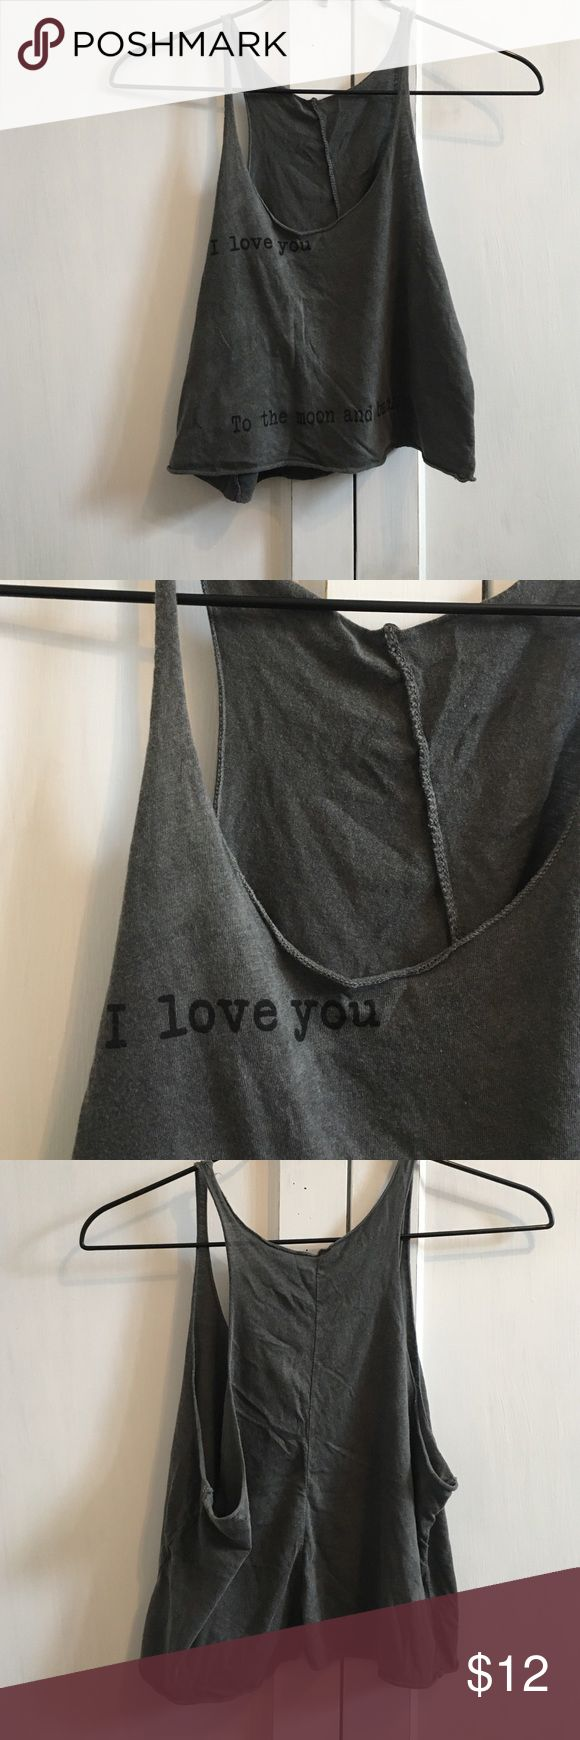 "Brandy Melville Tank Top Brandy Melville ""I love you to the moon and back"" grey tank top. In new condition Brandy Melville Tops Tank Tops"